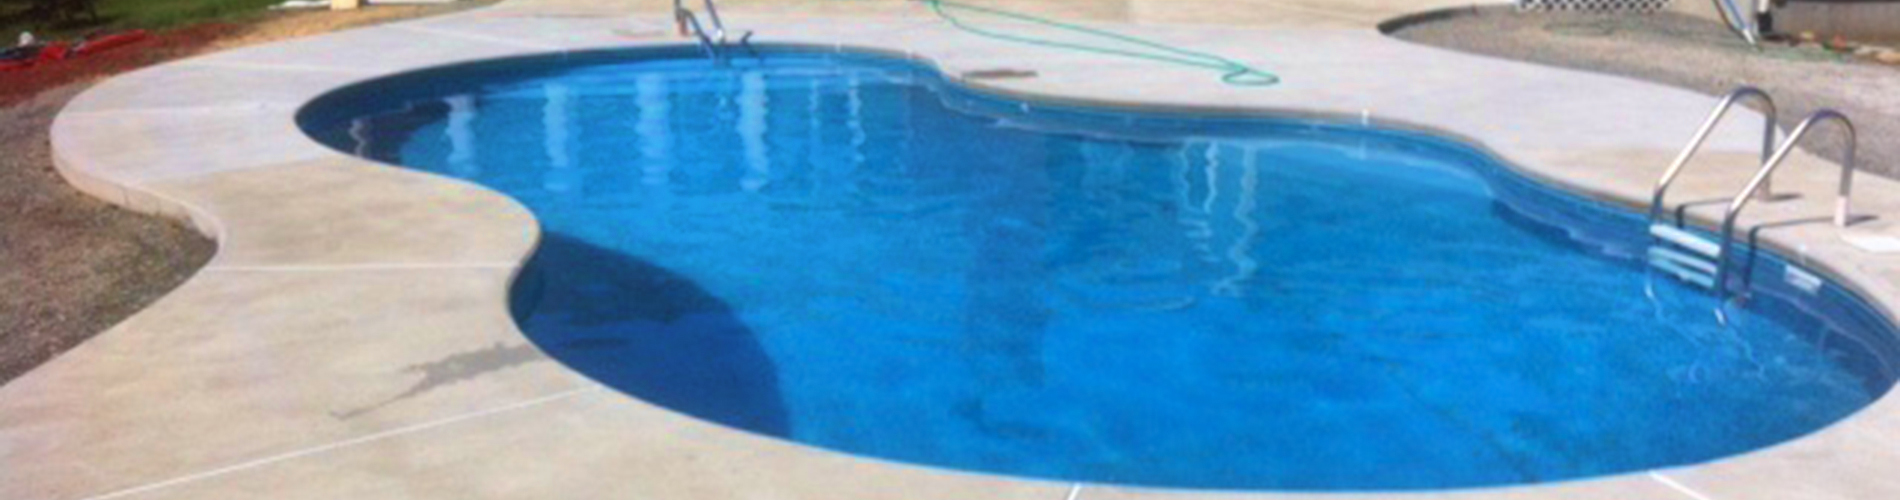 Owning A Pool inground pool installations and above ground pools in nhbest